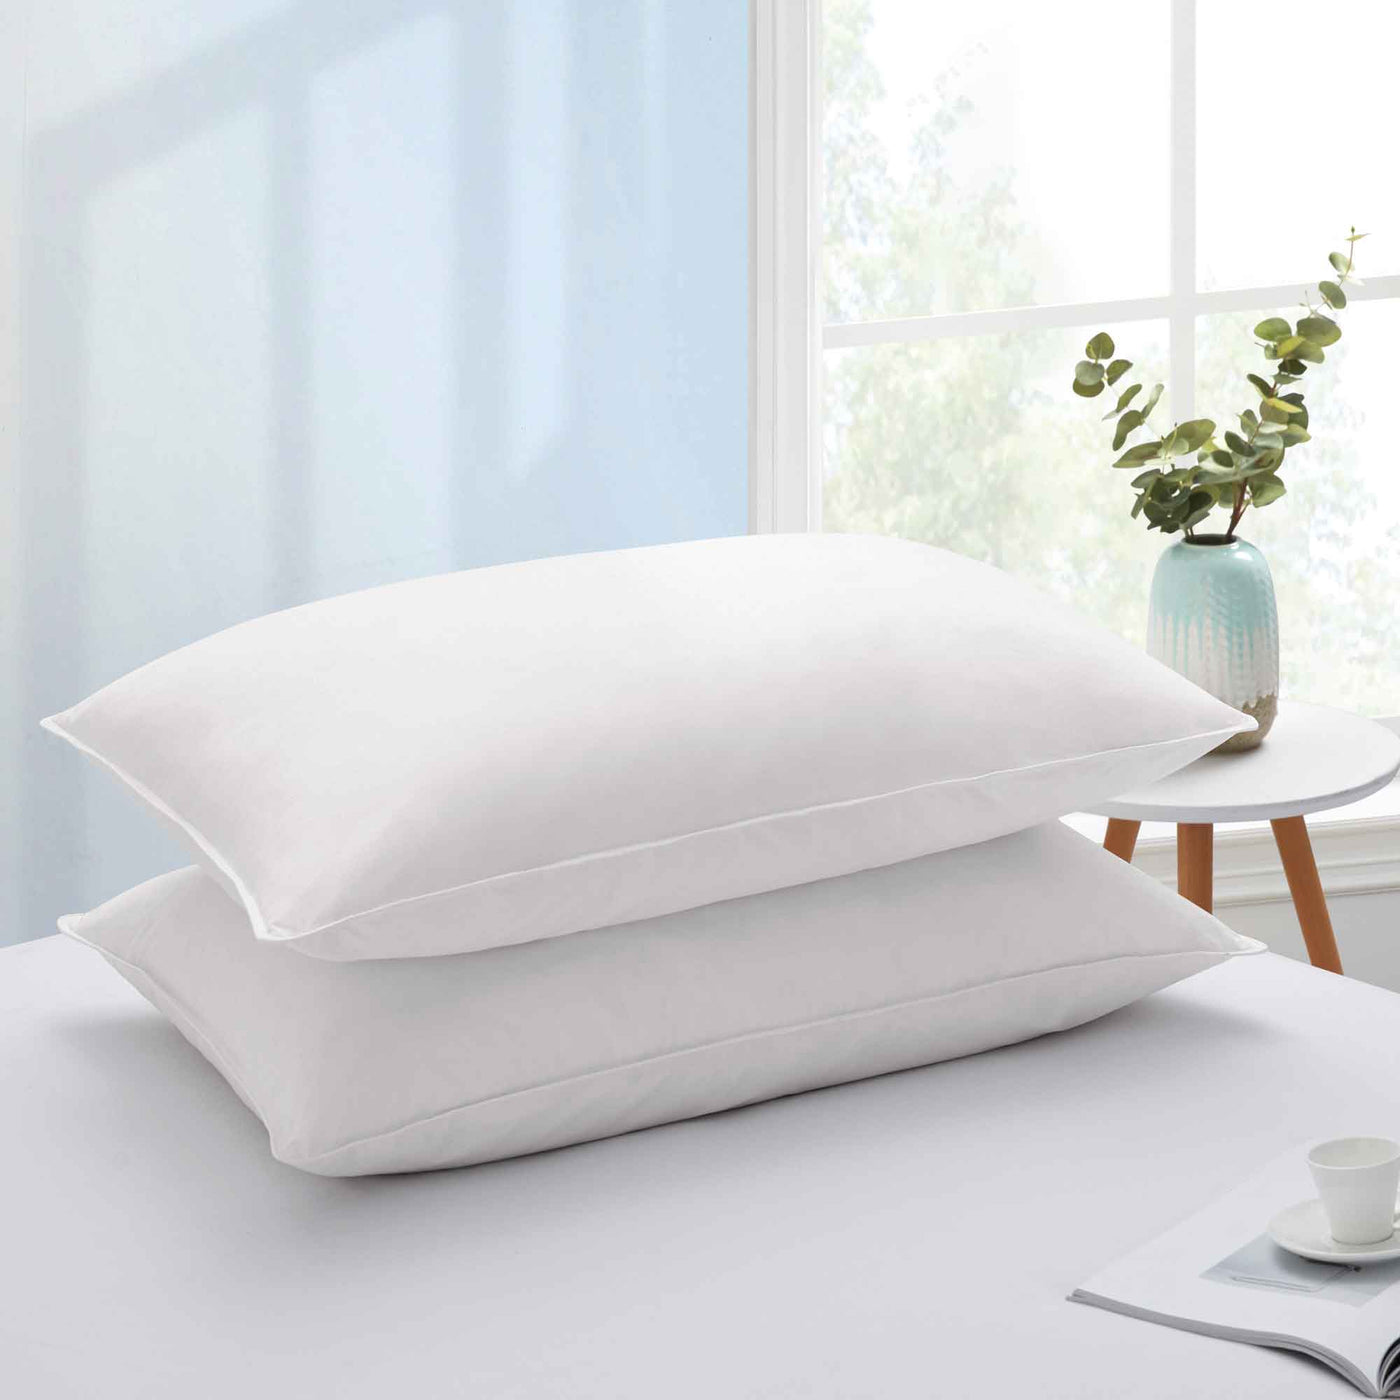 Puredown Natural Memory Foam Goose Feather Bed Pillows